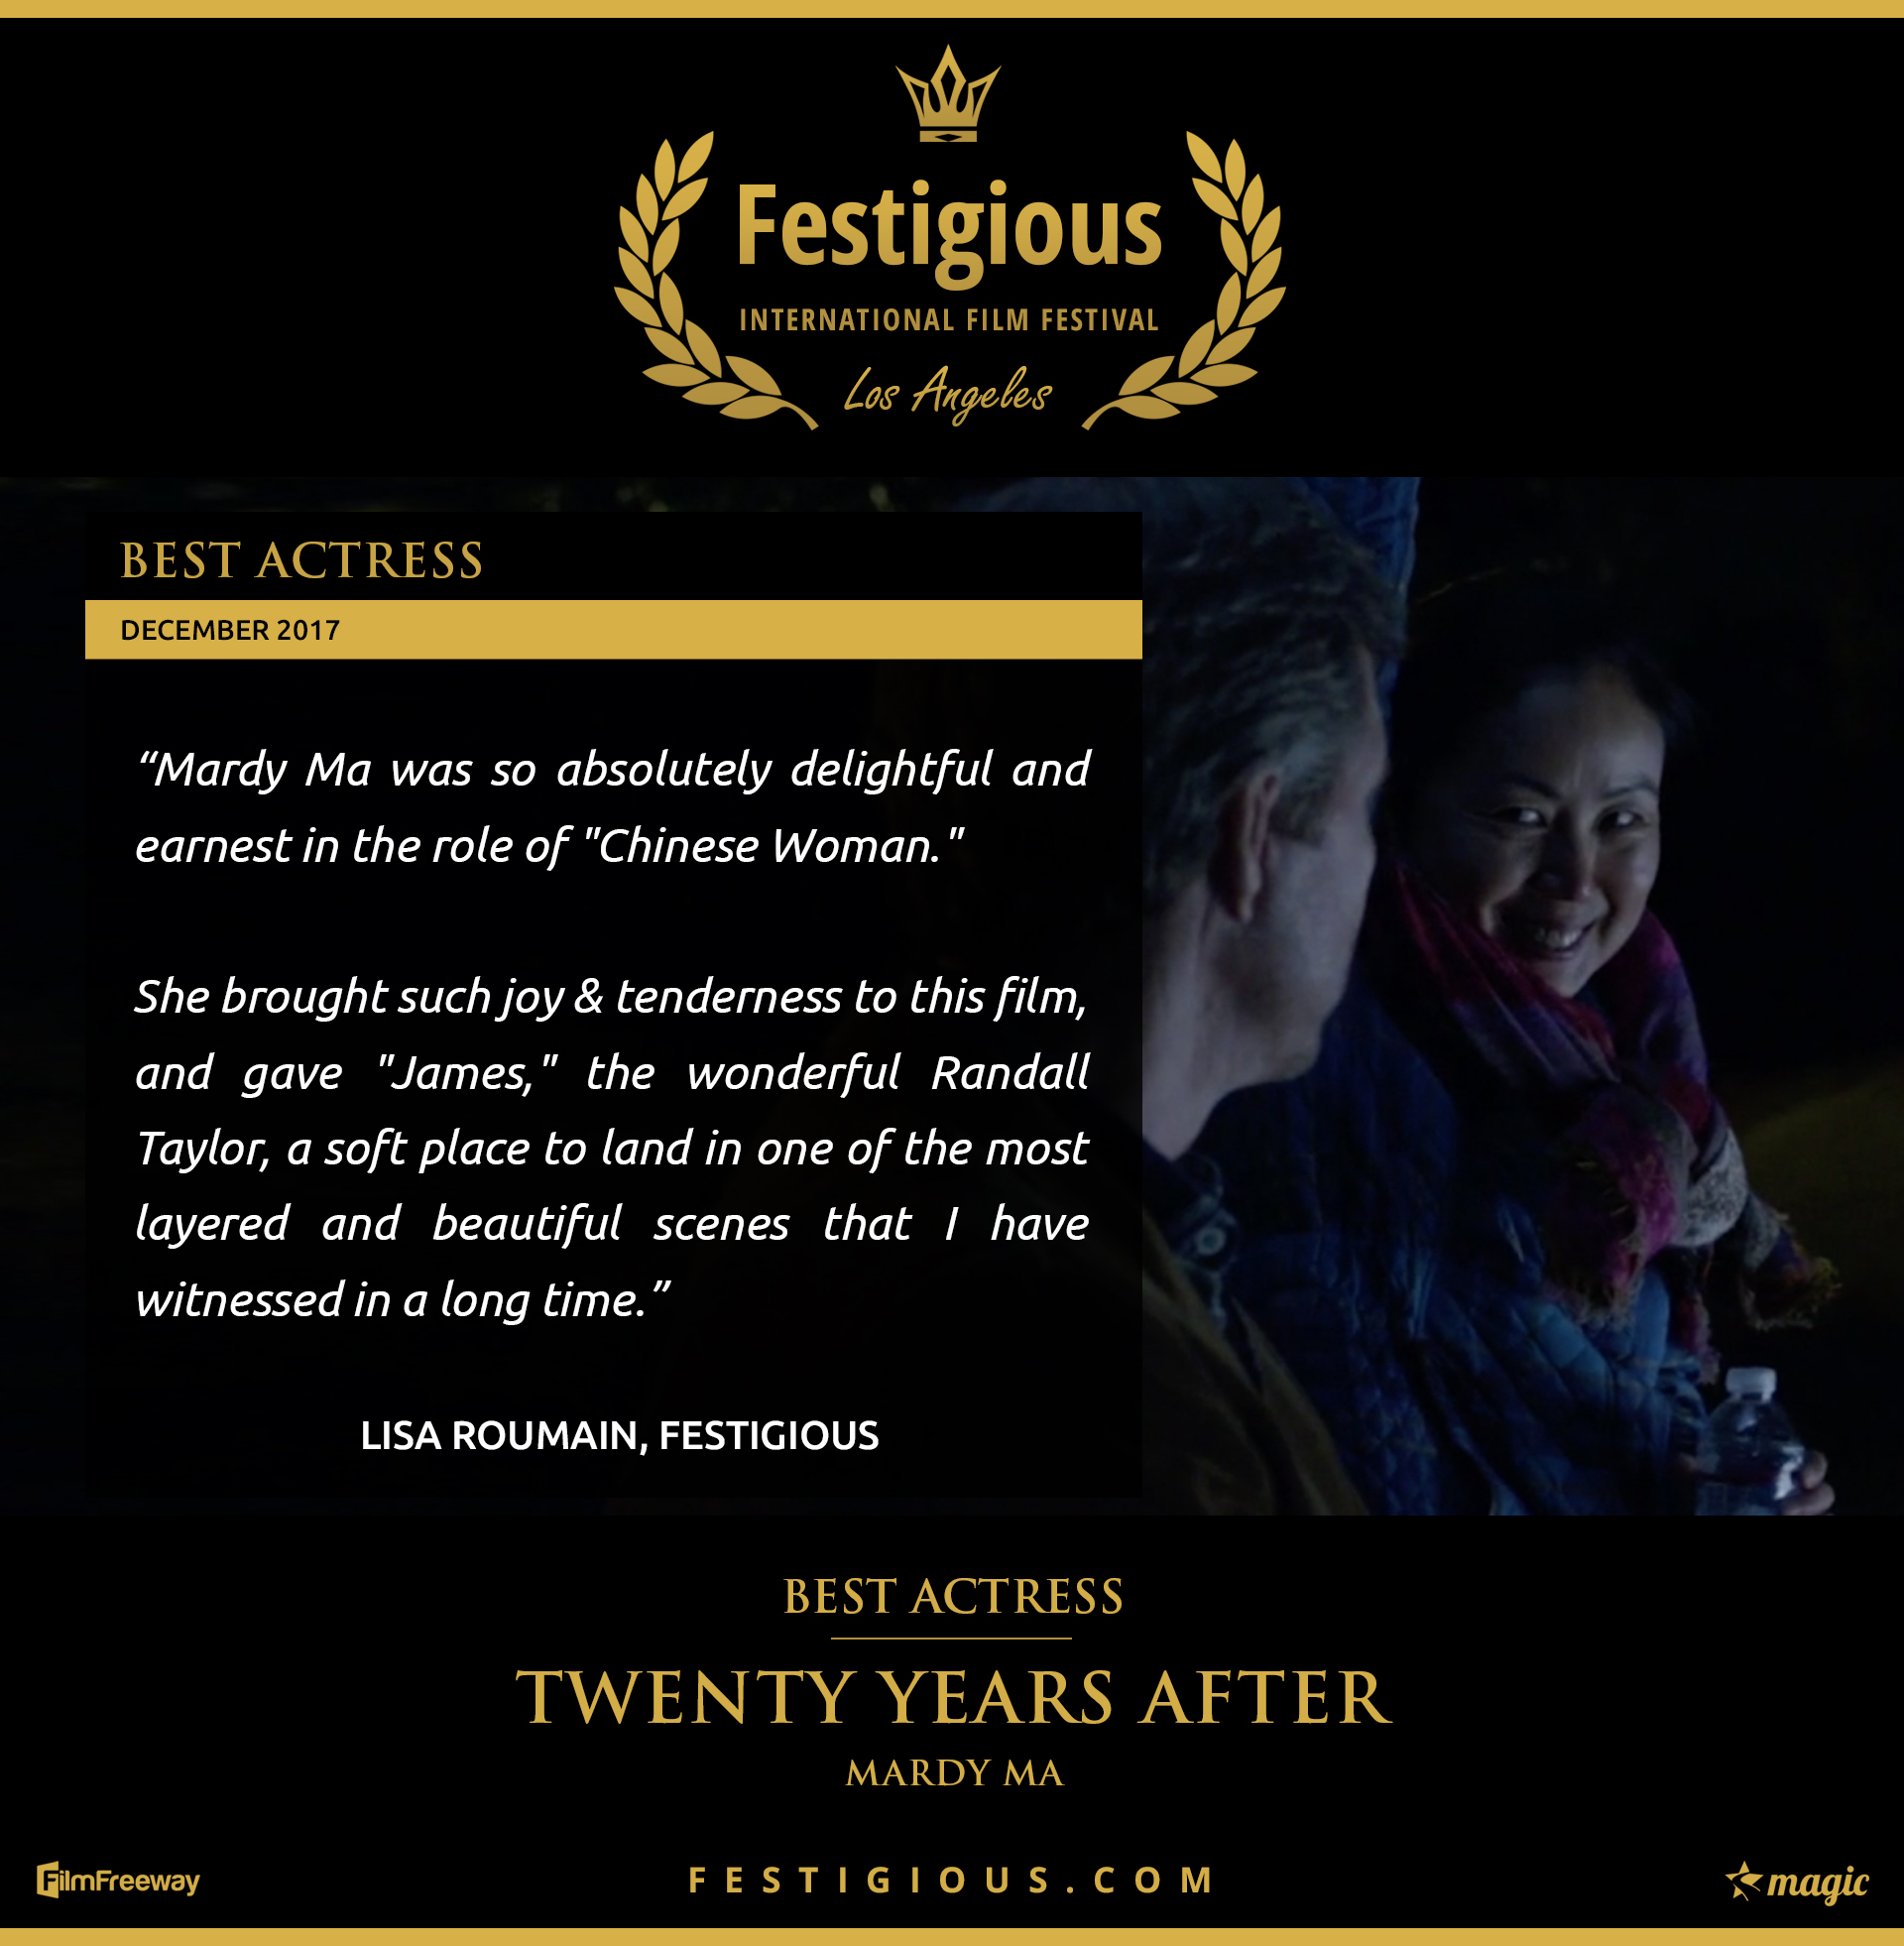 Twenty Years After - Festigious Best Actress - 2017 12